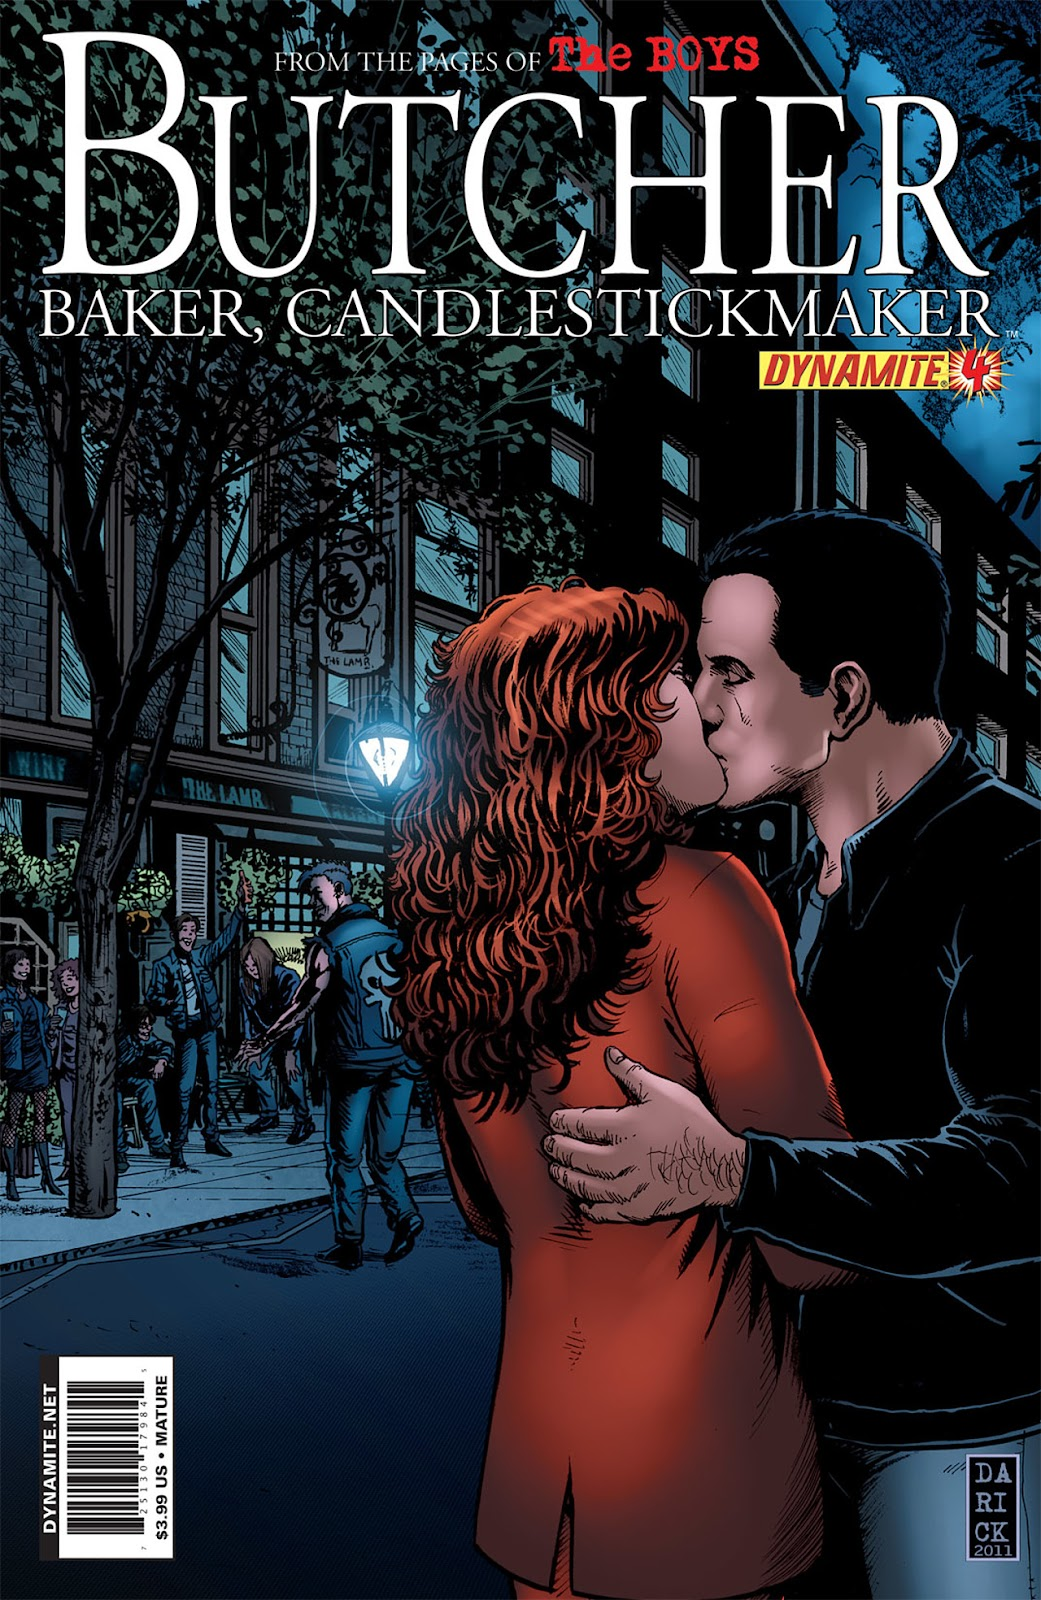 Read online The Boys: Butcher, Baker, Candlestickmaker comic -  Issue #4 - 1